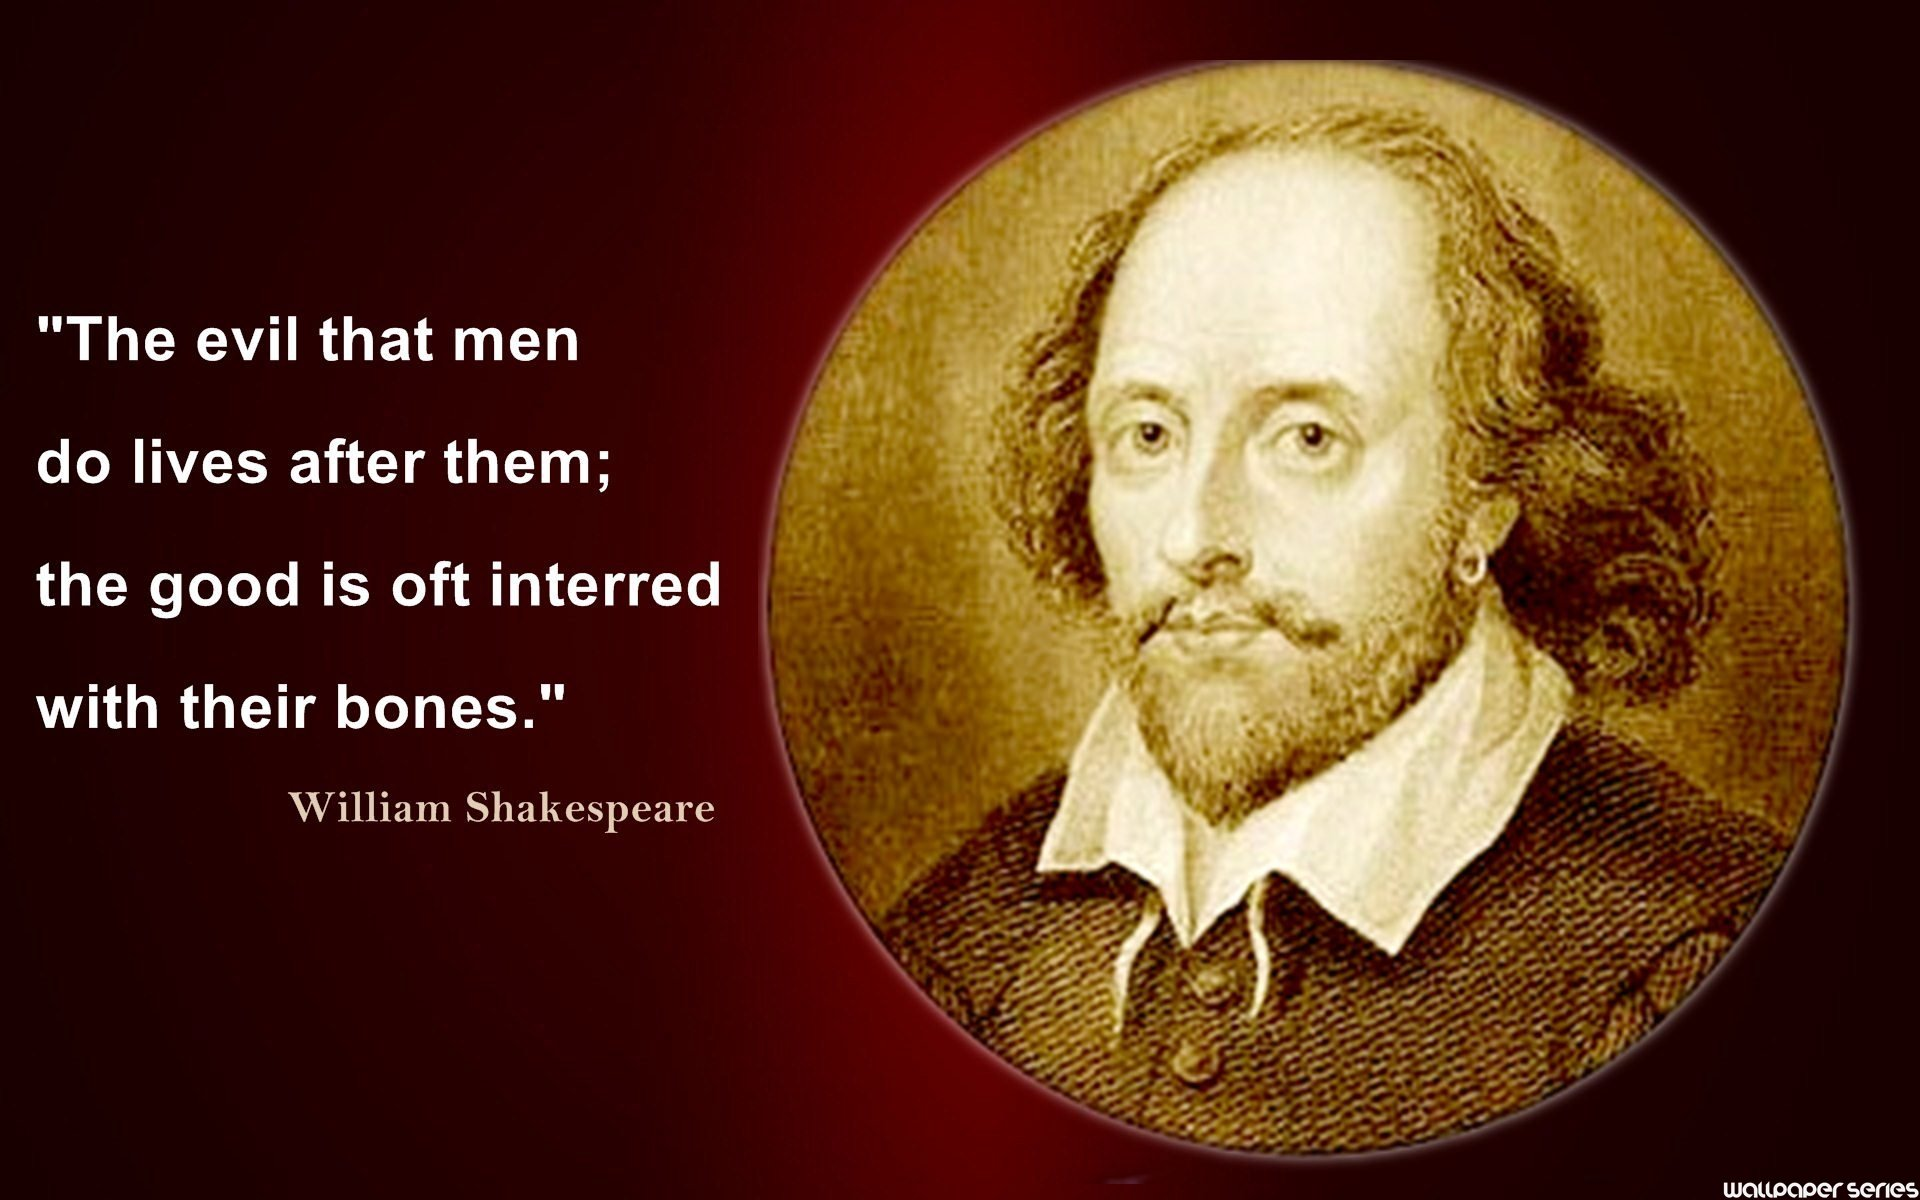 William Shakespeare Quotes Wallpapers HD Backgrounds Download 1920x1200